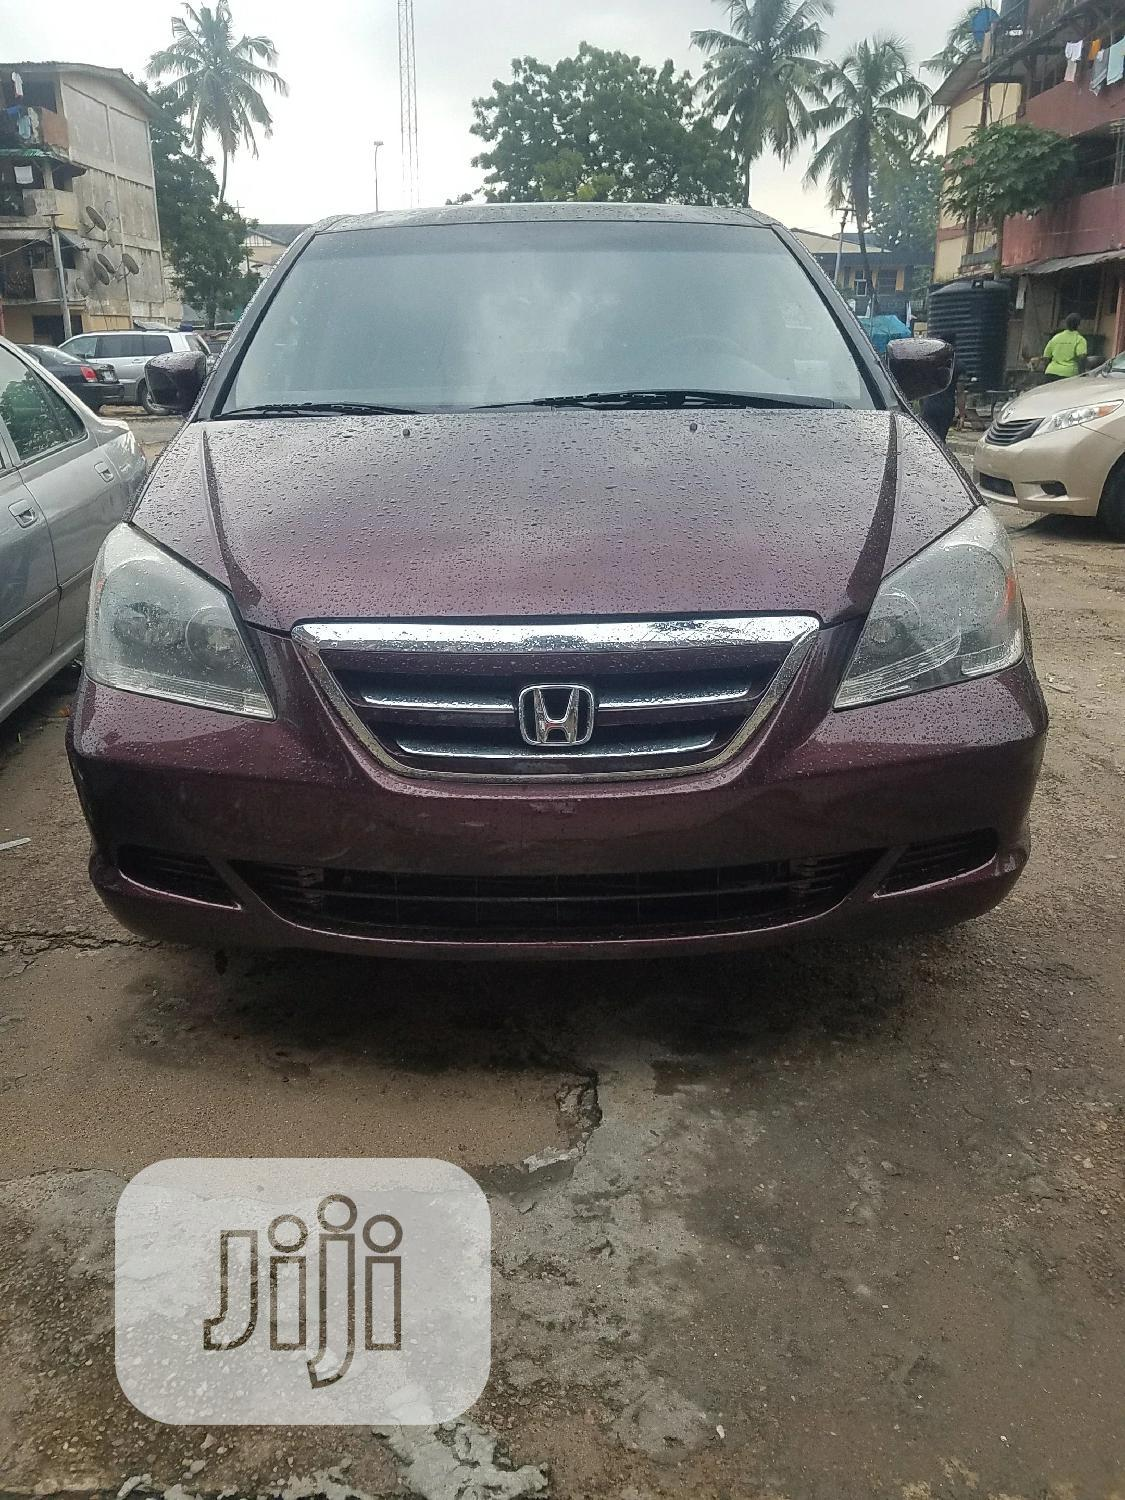 Archive: Honda Odyssey 2007 Touring Brown